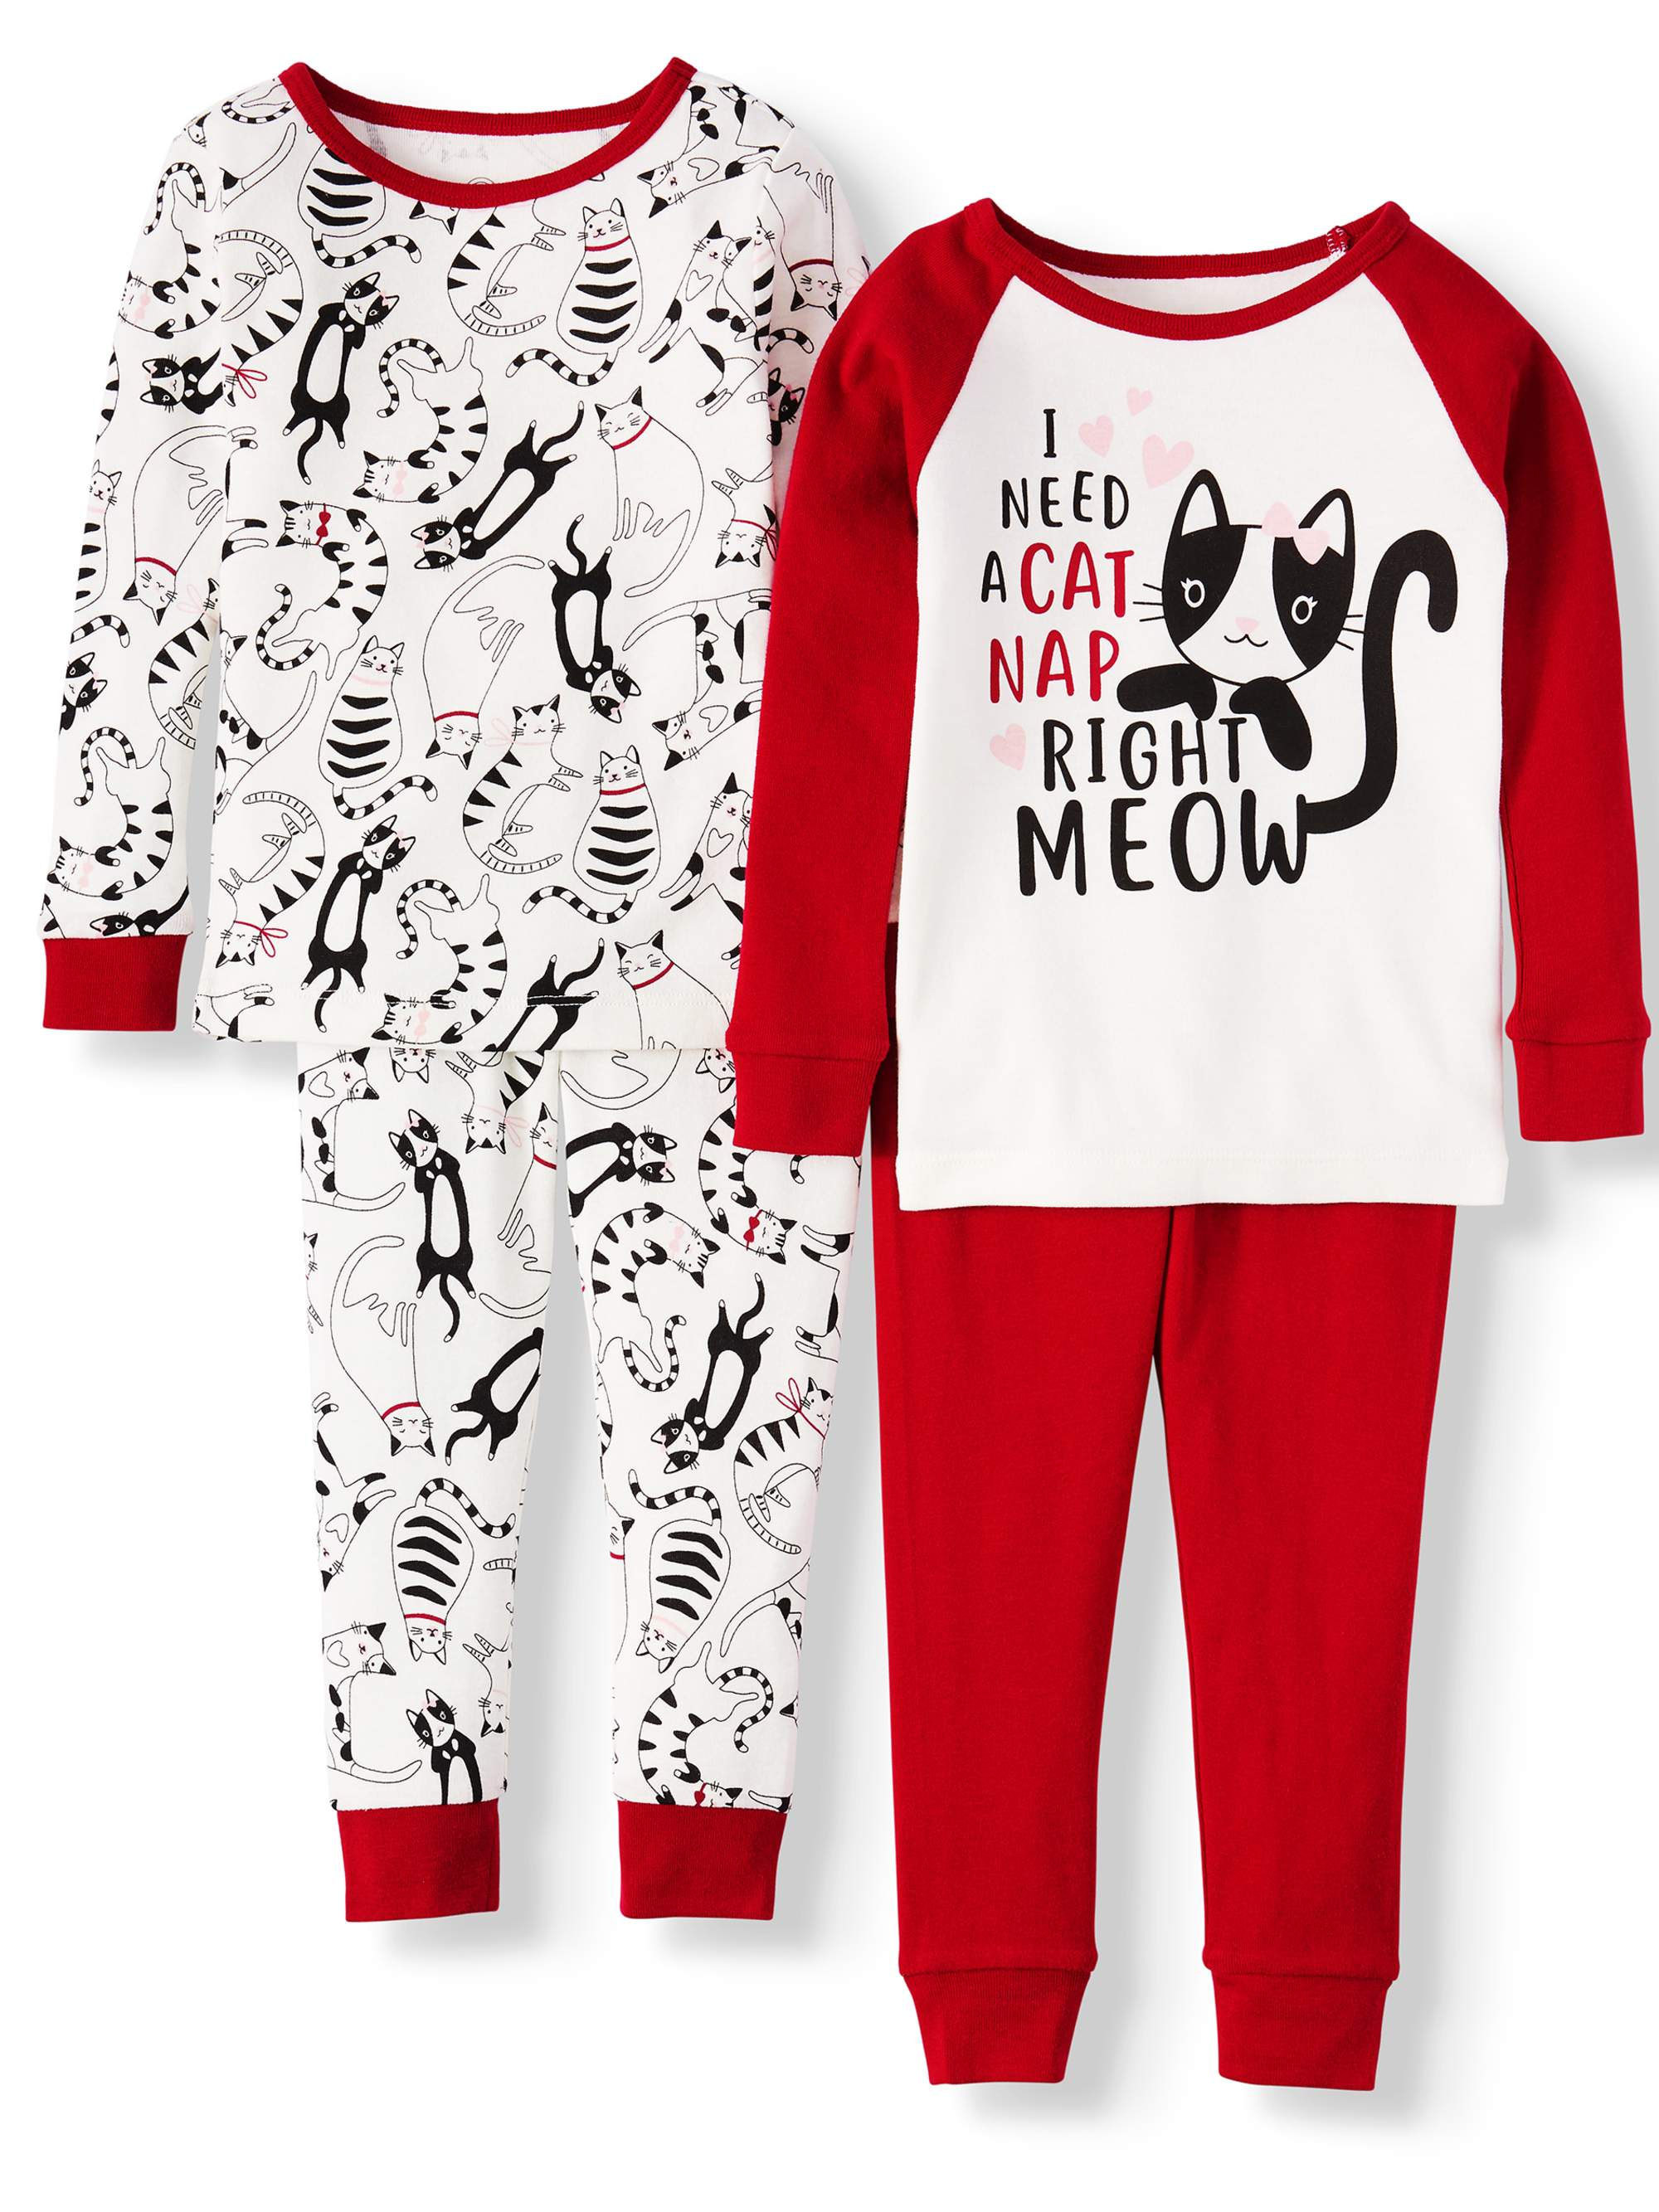 5T Star Wars Kids Base Layer Climate Smart 2pc Set Long Sleeve Age 5